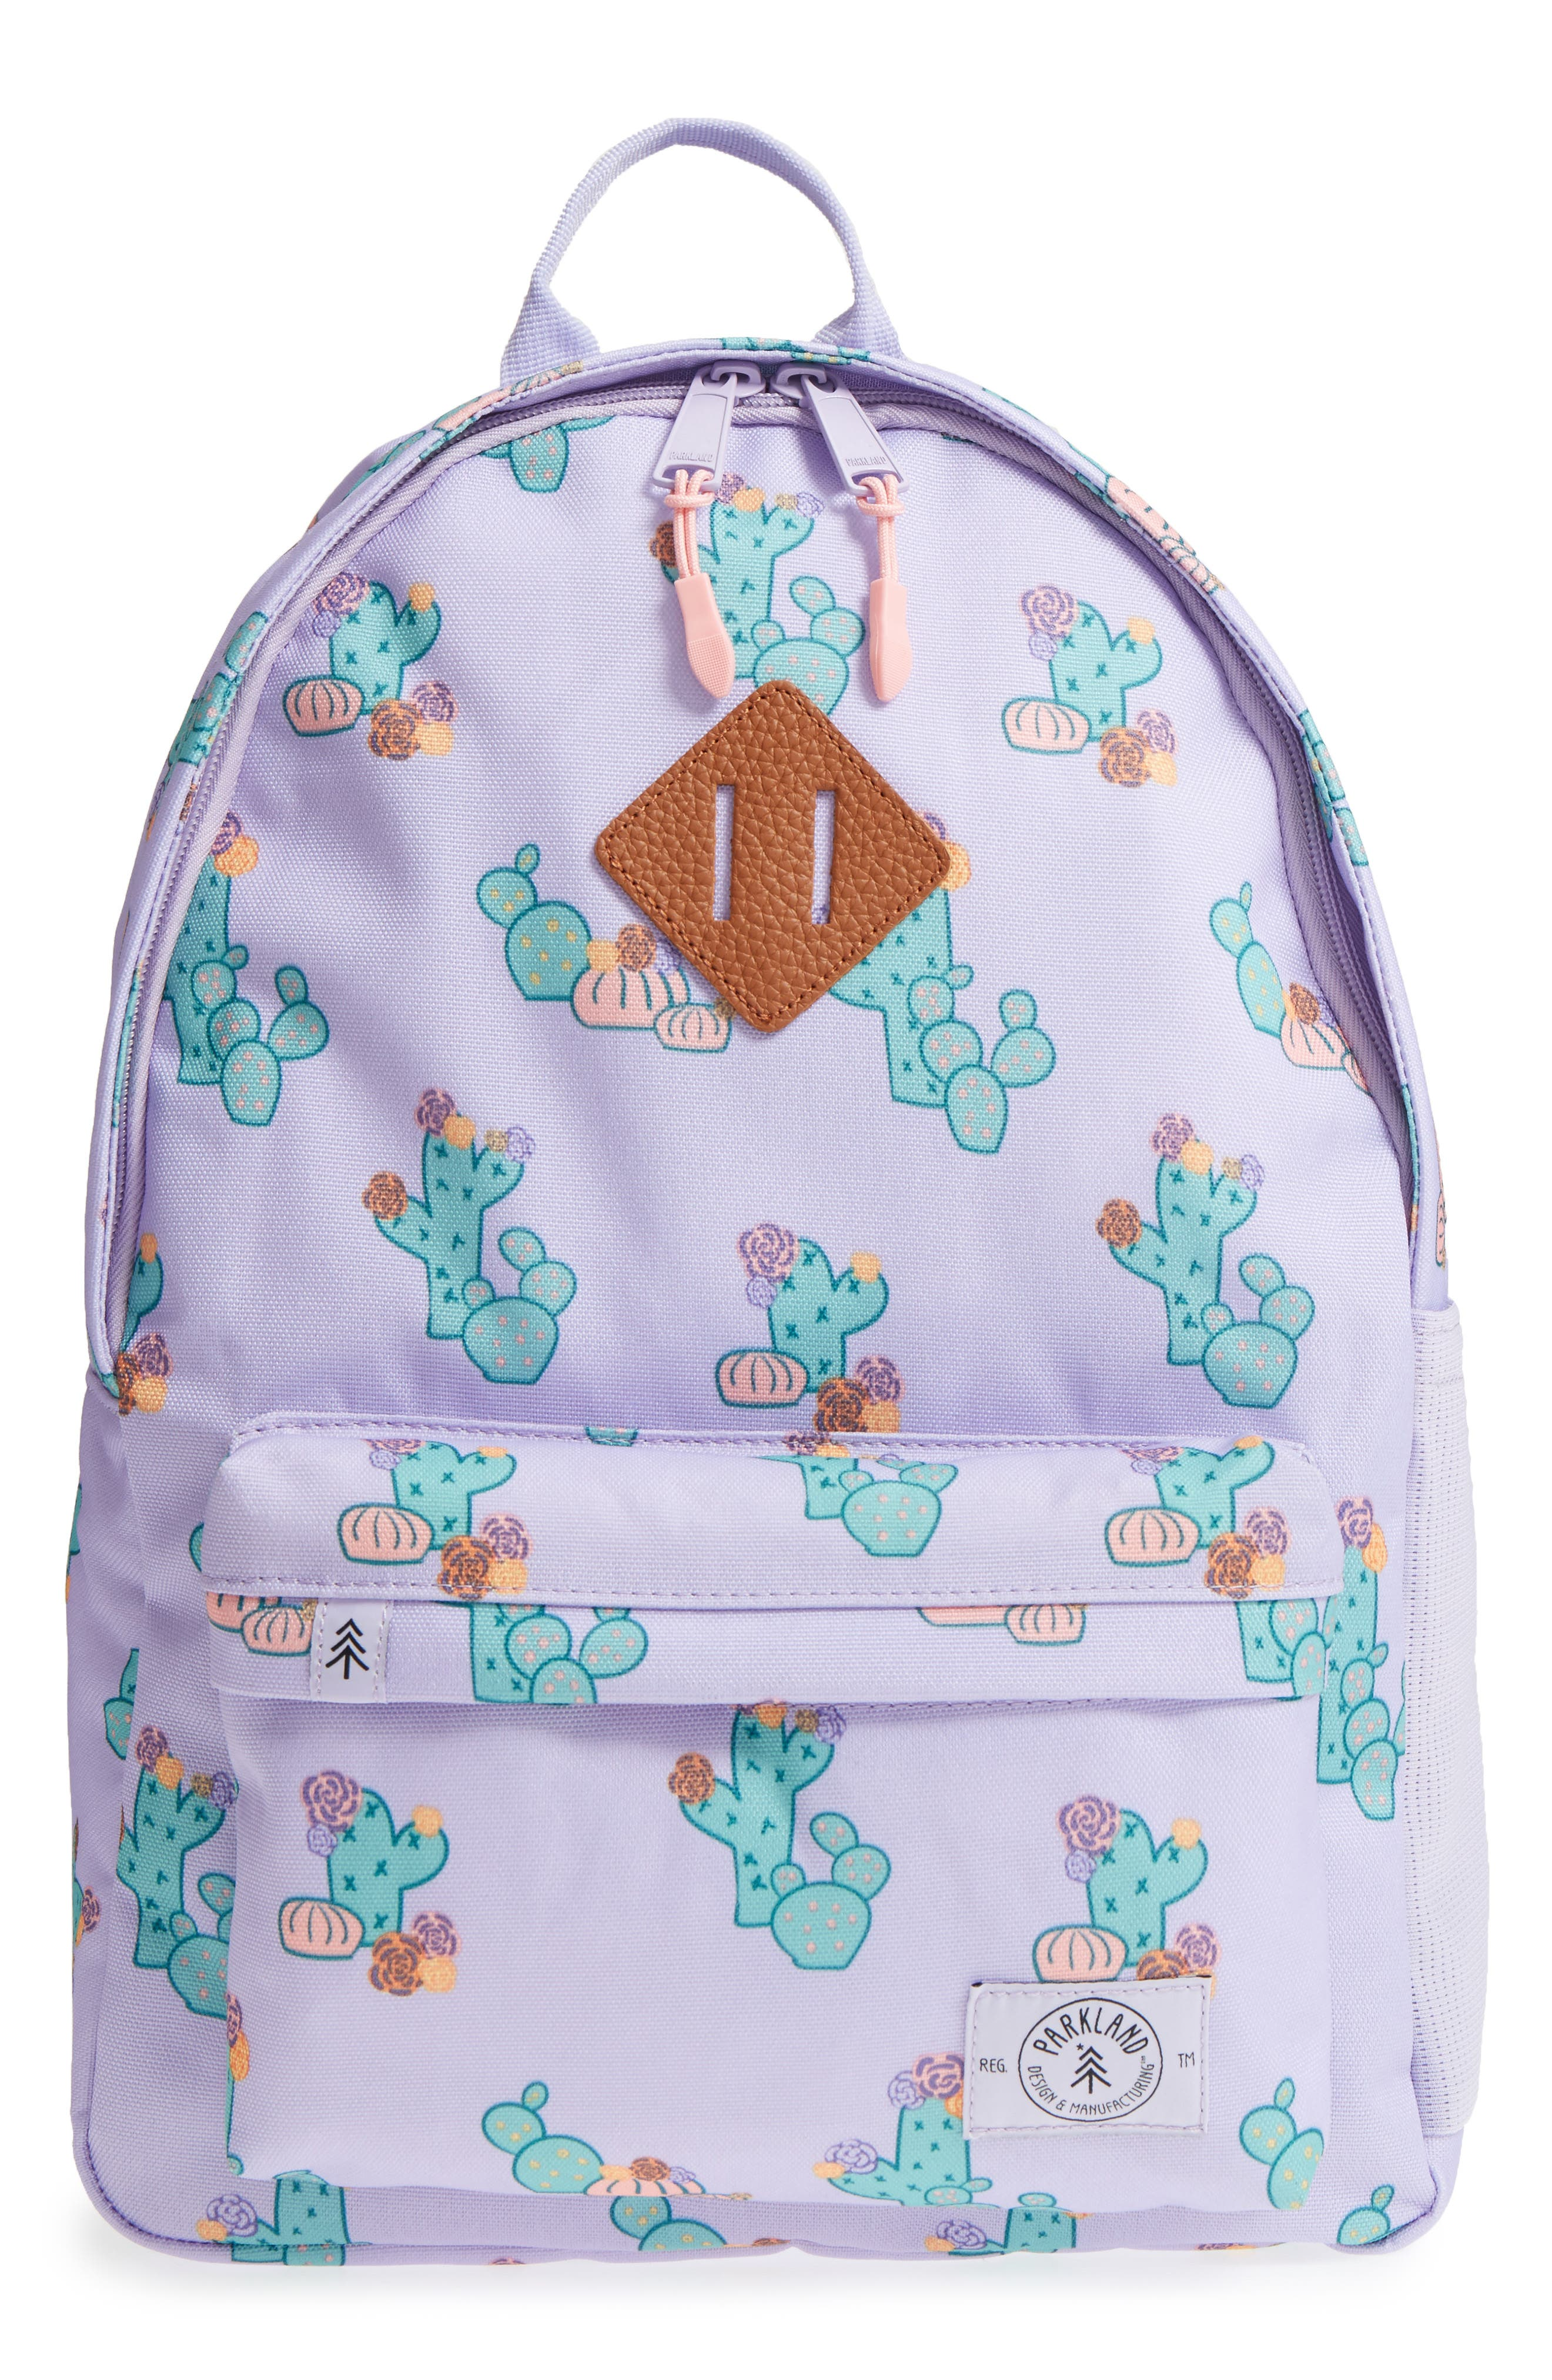 Bayside Cactus Flower Backpack,                             Main thumbnail 1, color,                             Cactus Flower